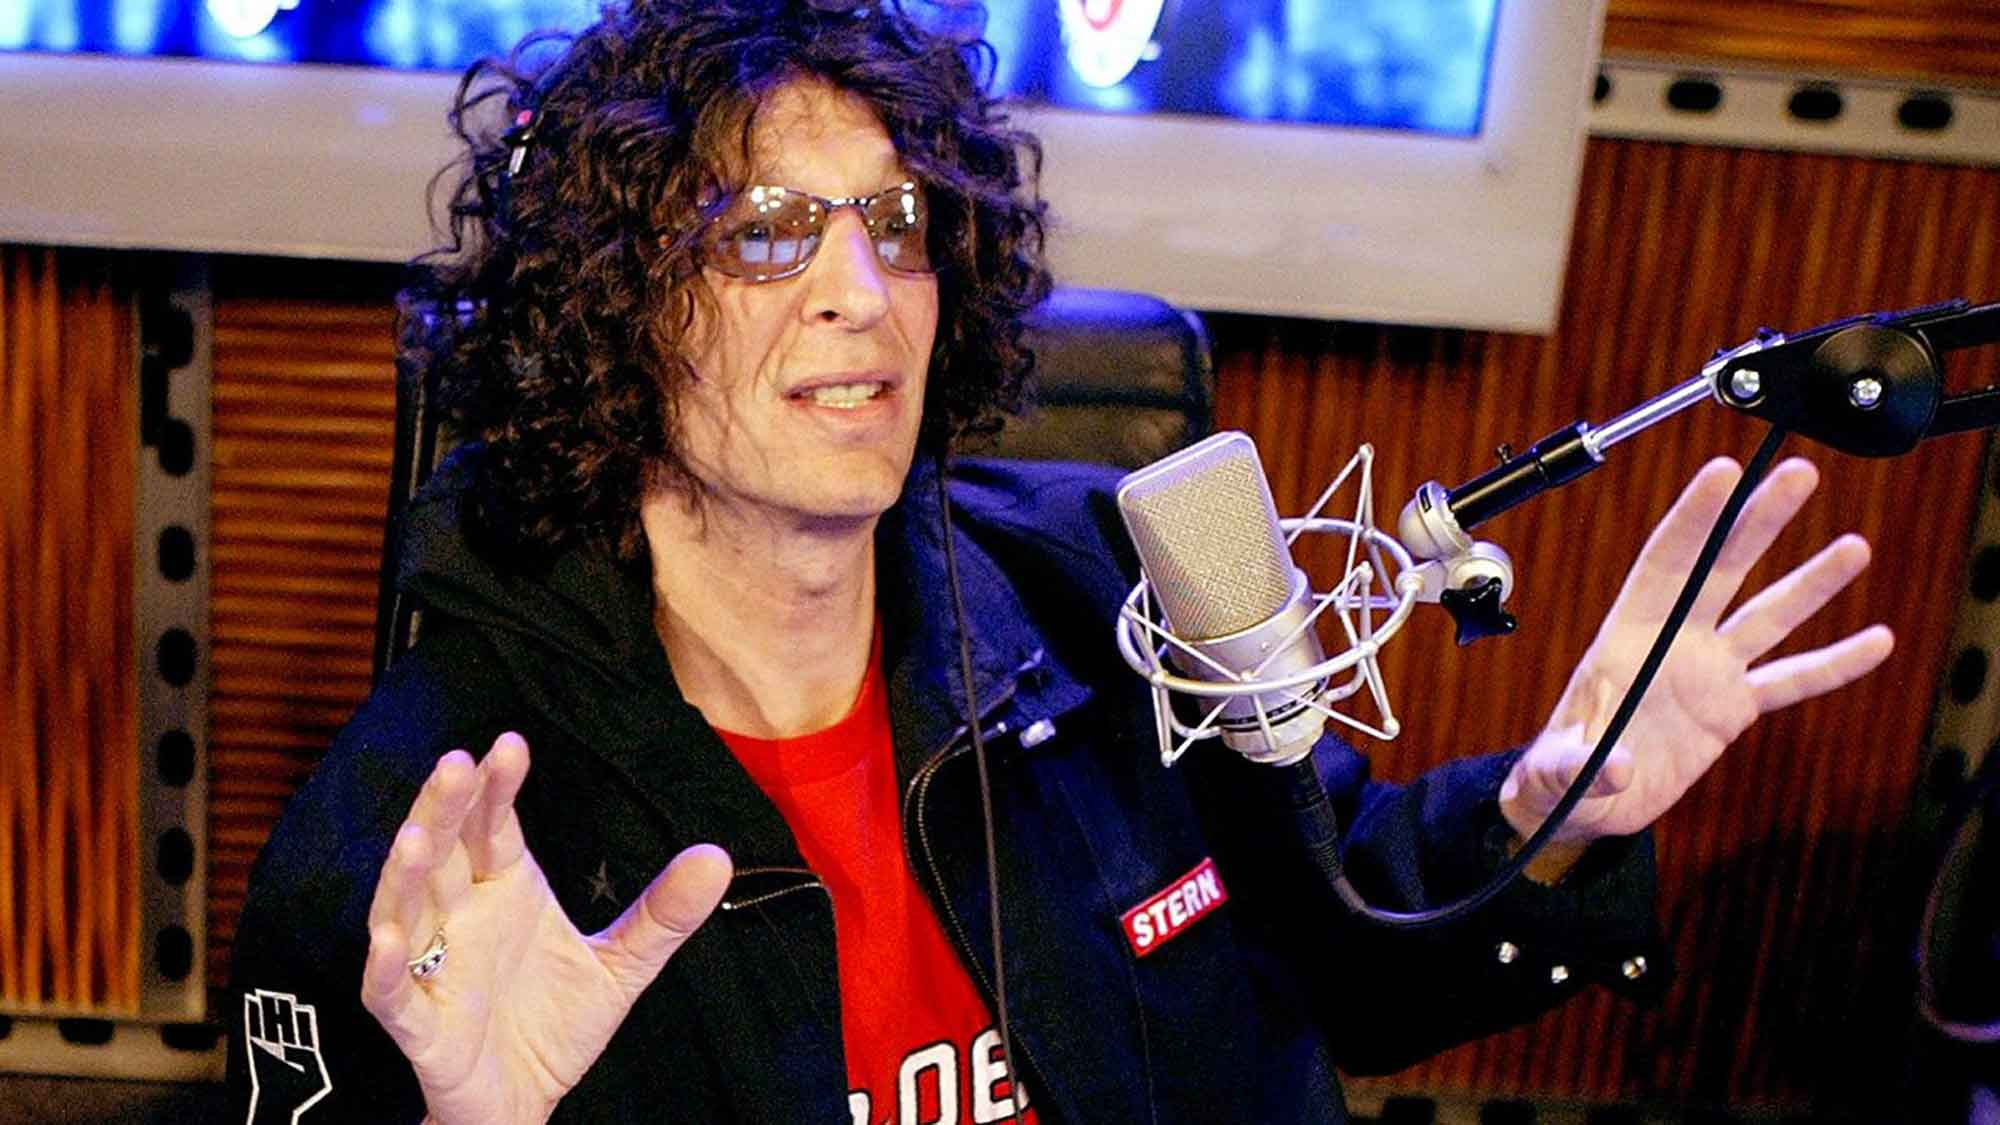 Howard Stern broadcasting the Howard Stern Show